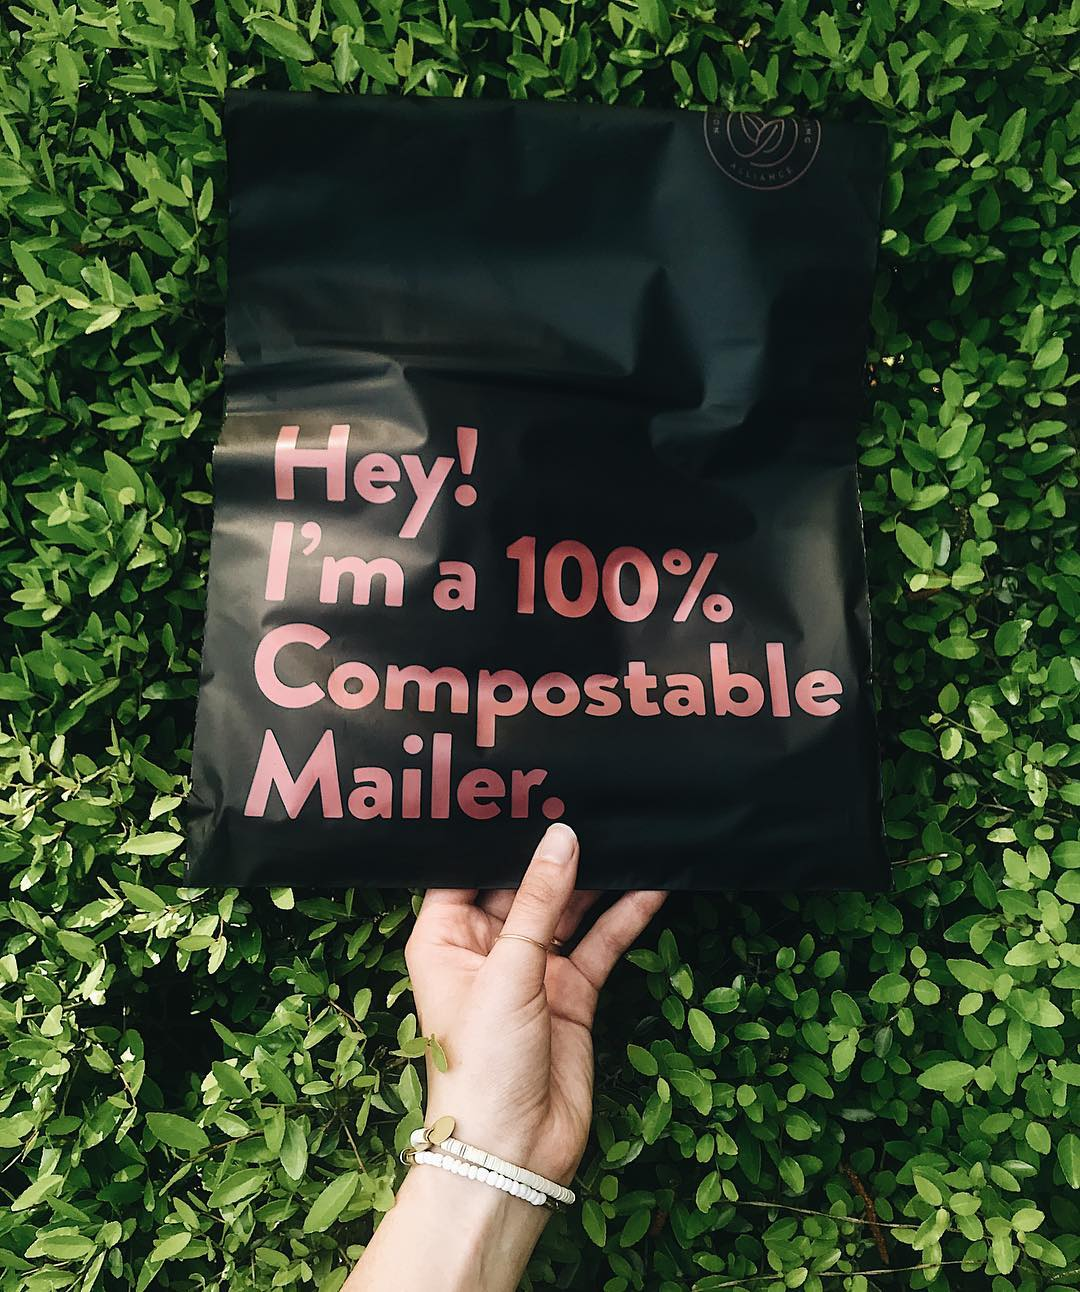 How sustainable packaging helps reduce the world's plastic problem